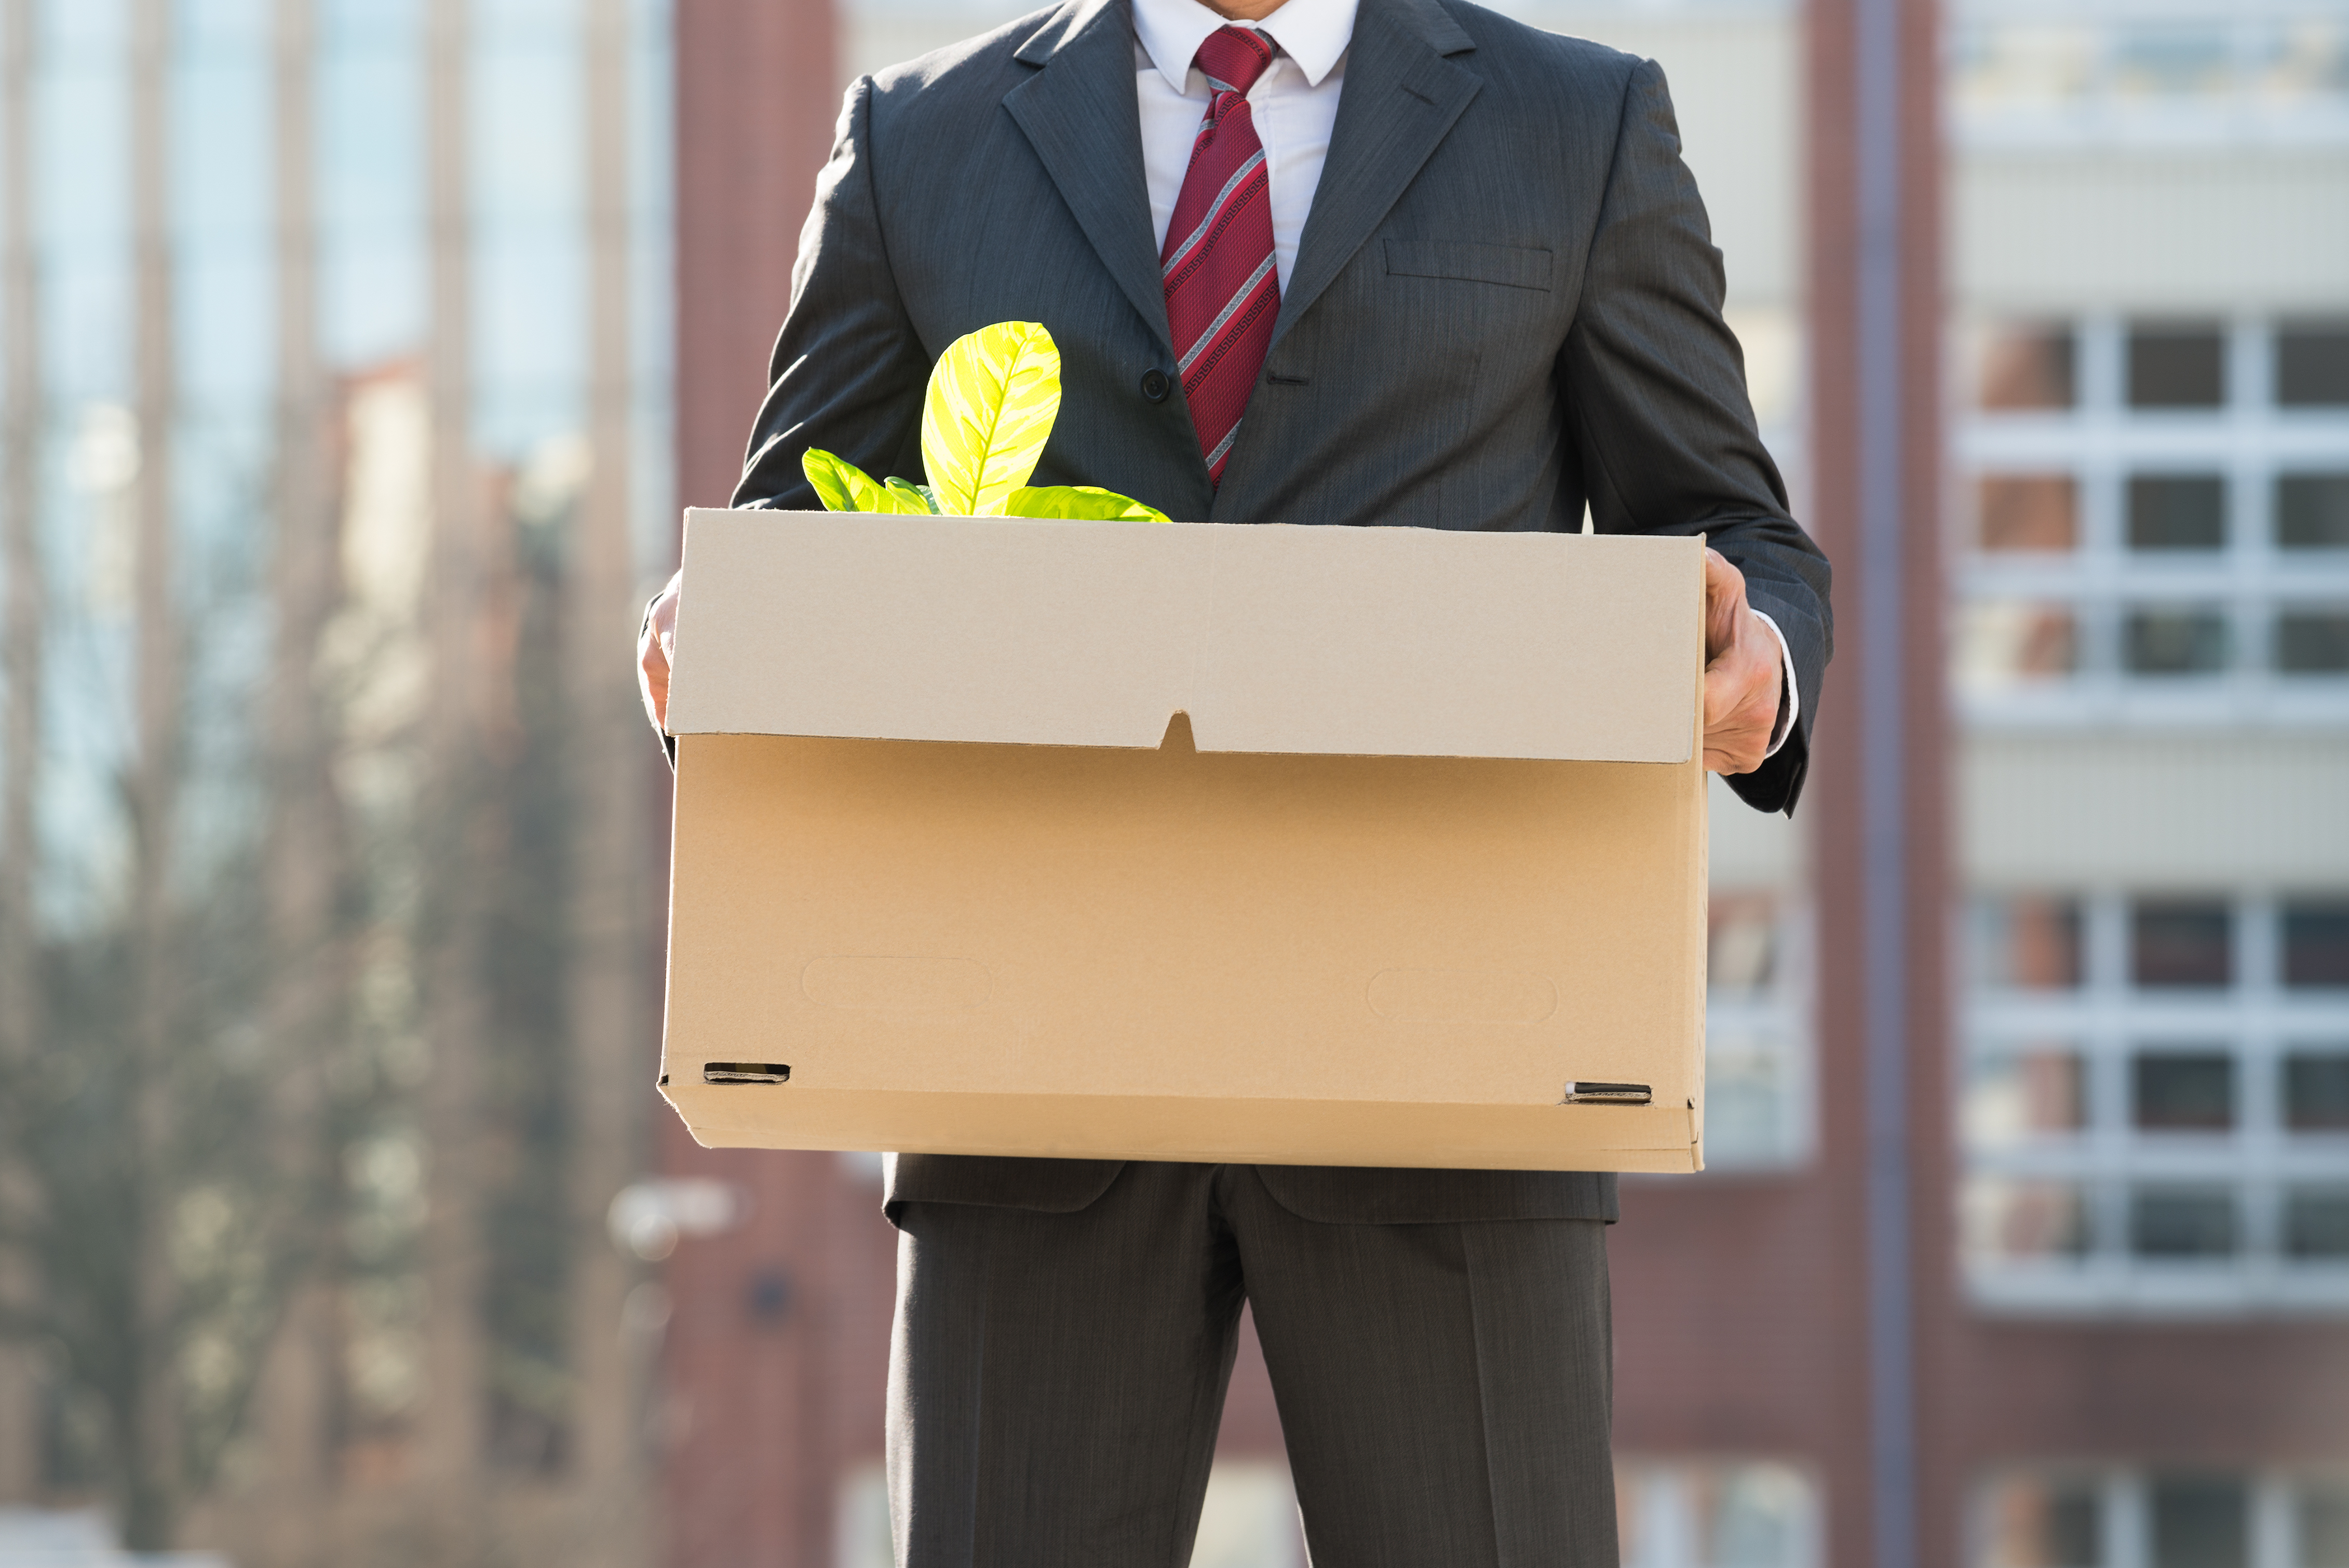 What Constitutes a Hostile Work Environment in California?